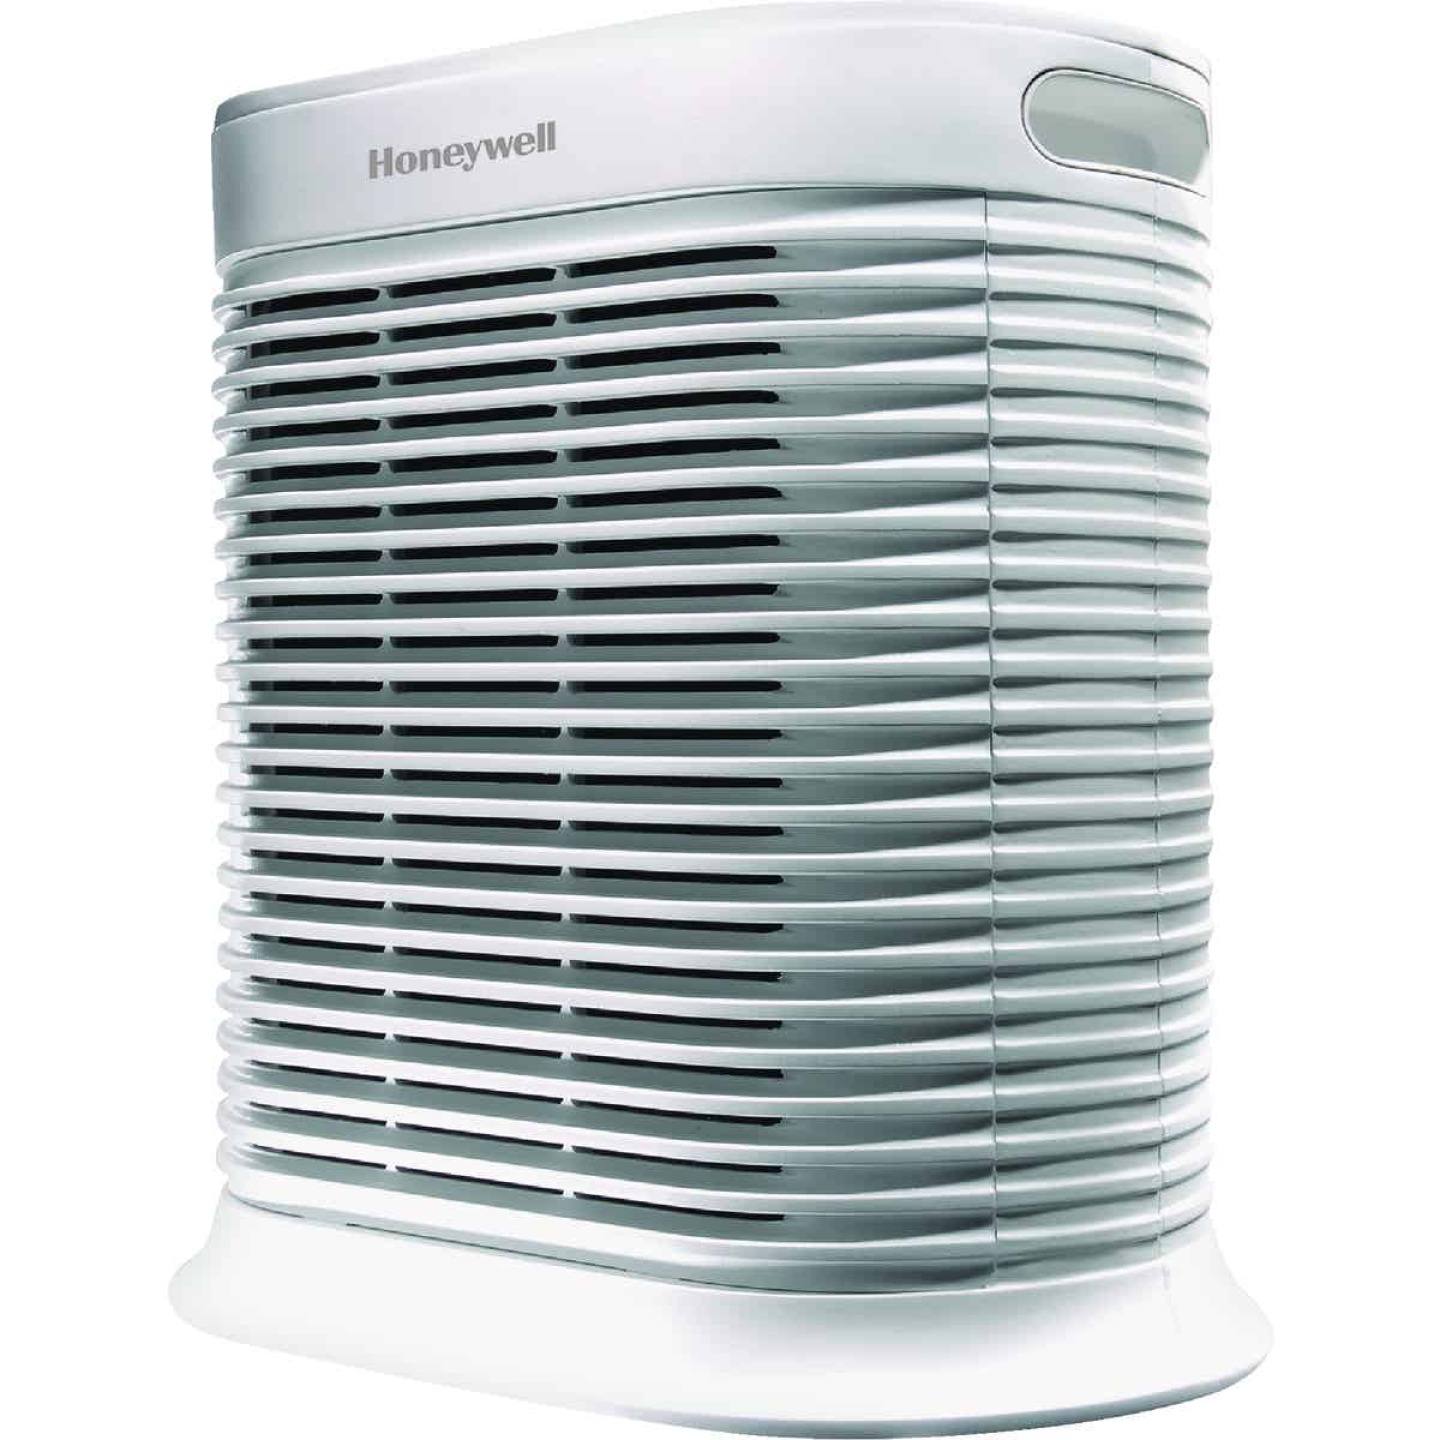 Honeywell True HEPA 310 Sq. Ft. White Tabletop Air Purifier Image 1